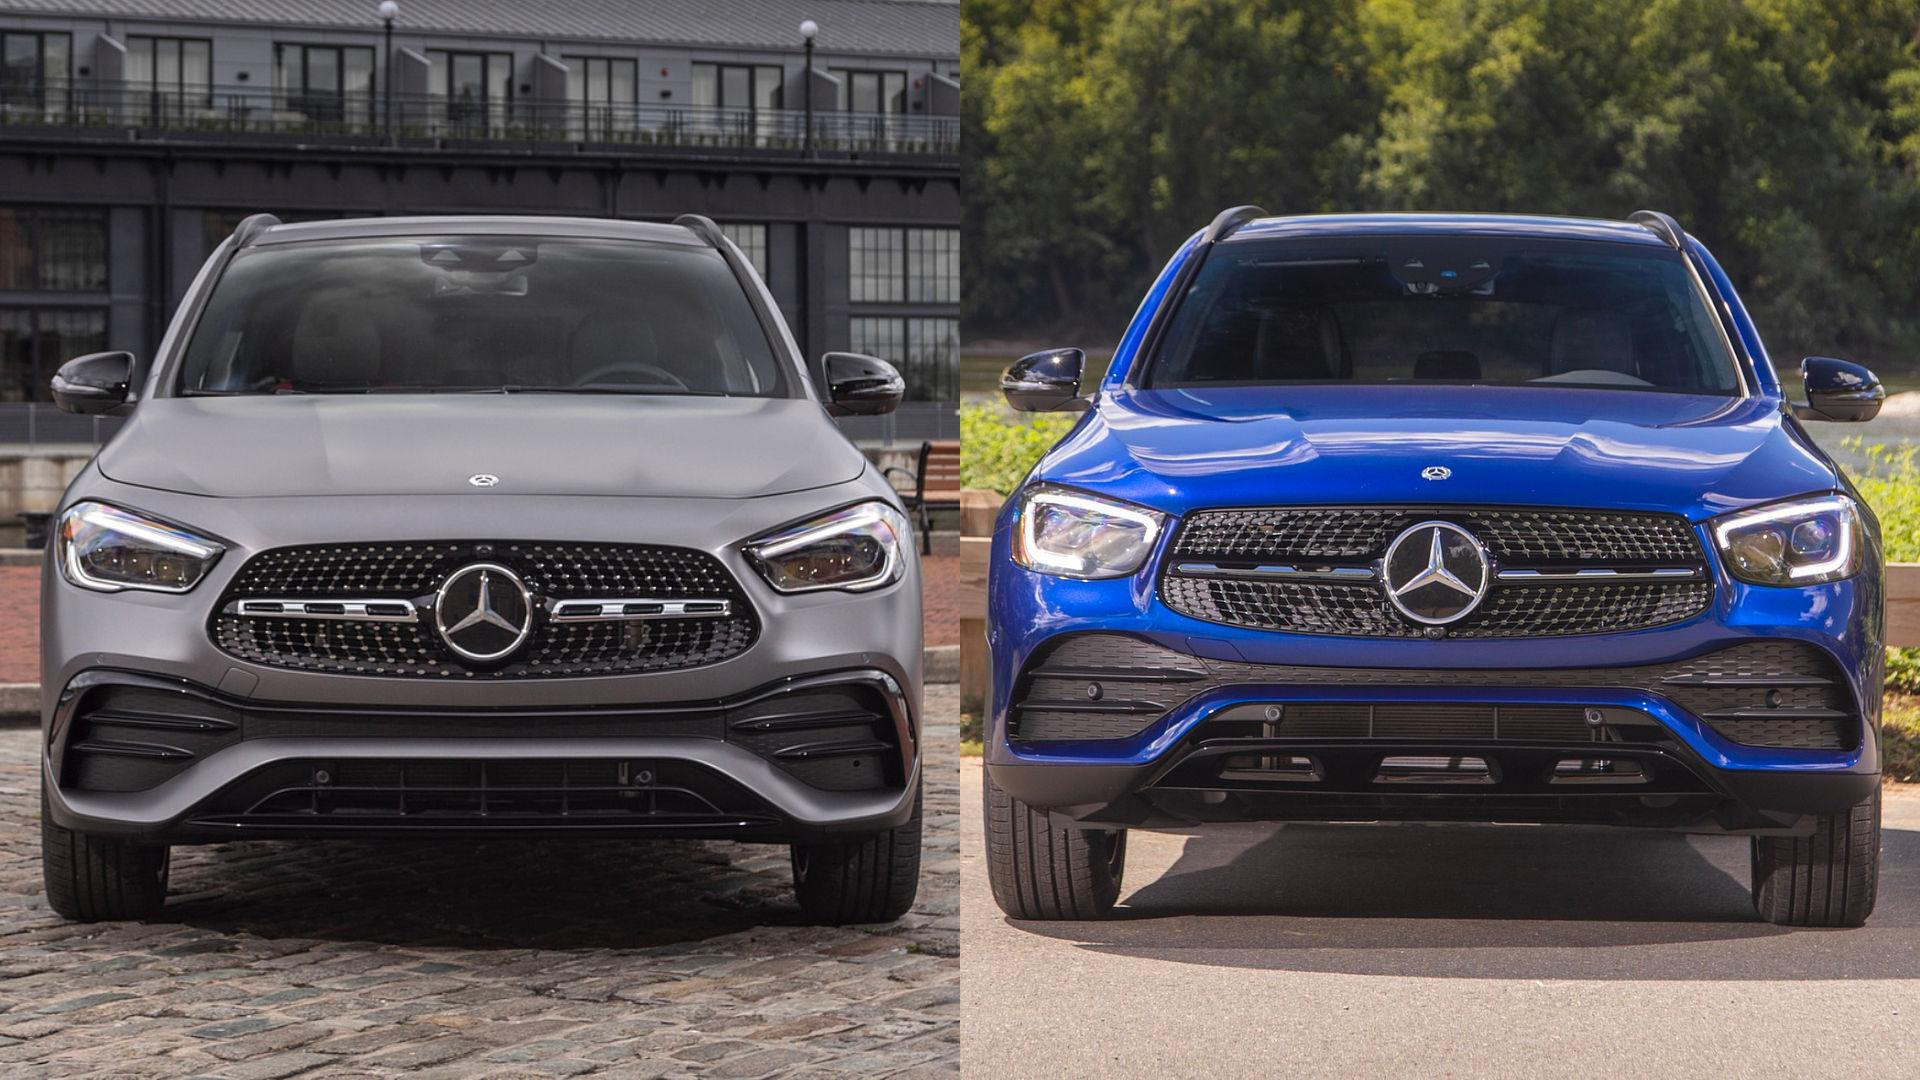 Mercedes GLA vs GLC